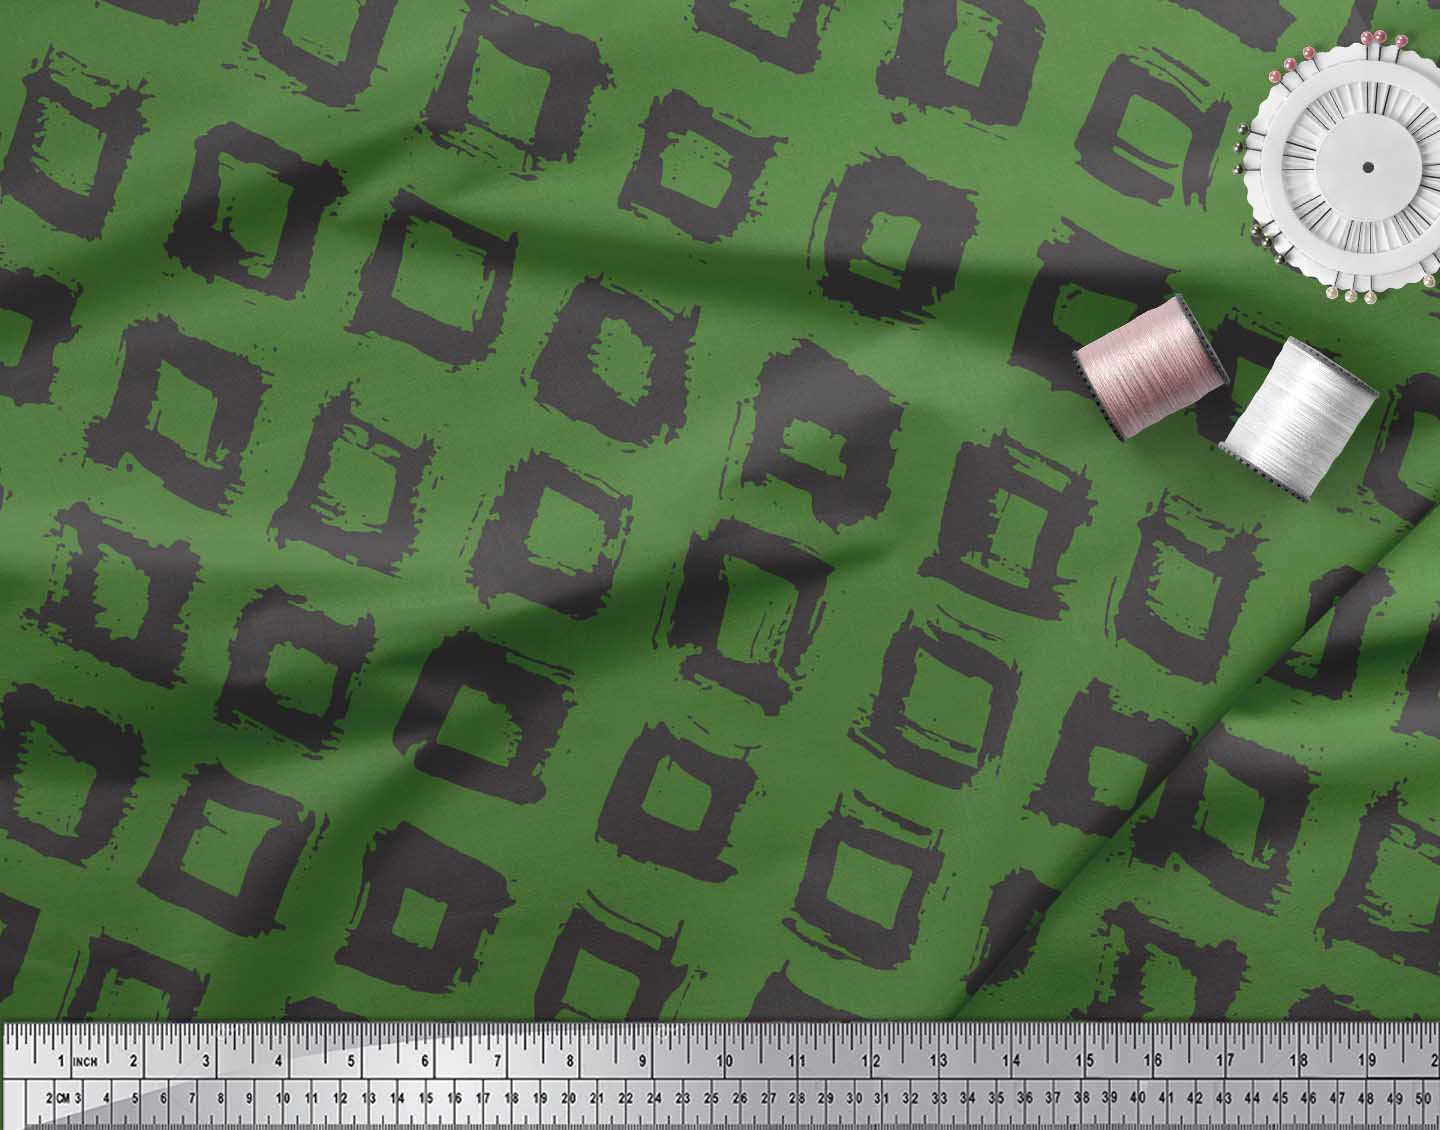 Soimoi-Green-Cotton-Poplin-Fabric-Square-Geometric-Decor-Fabric-wrp thumbnail 3